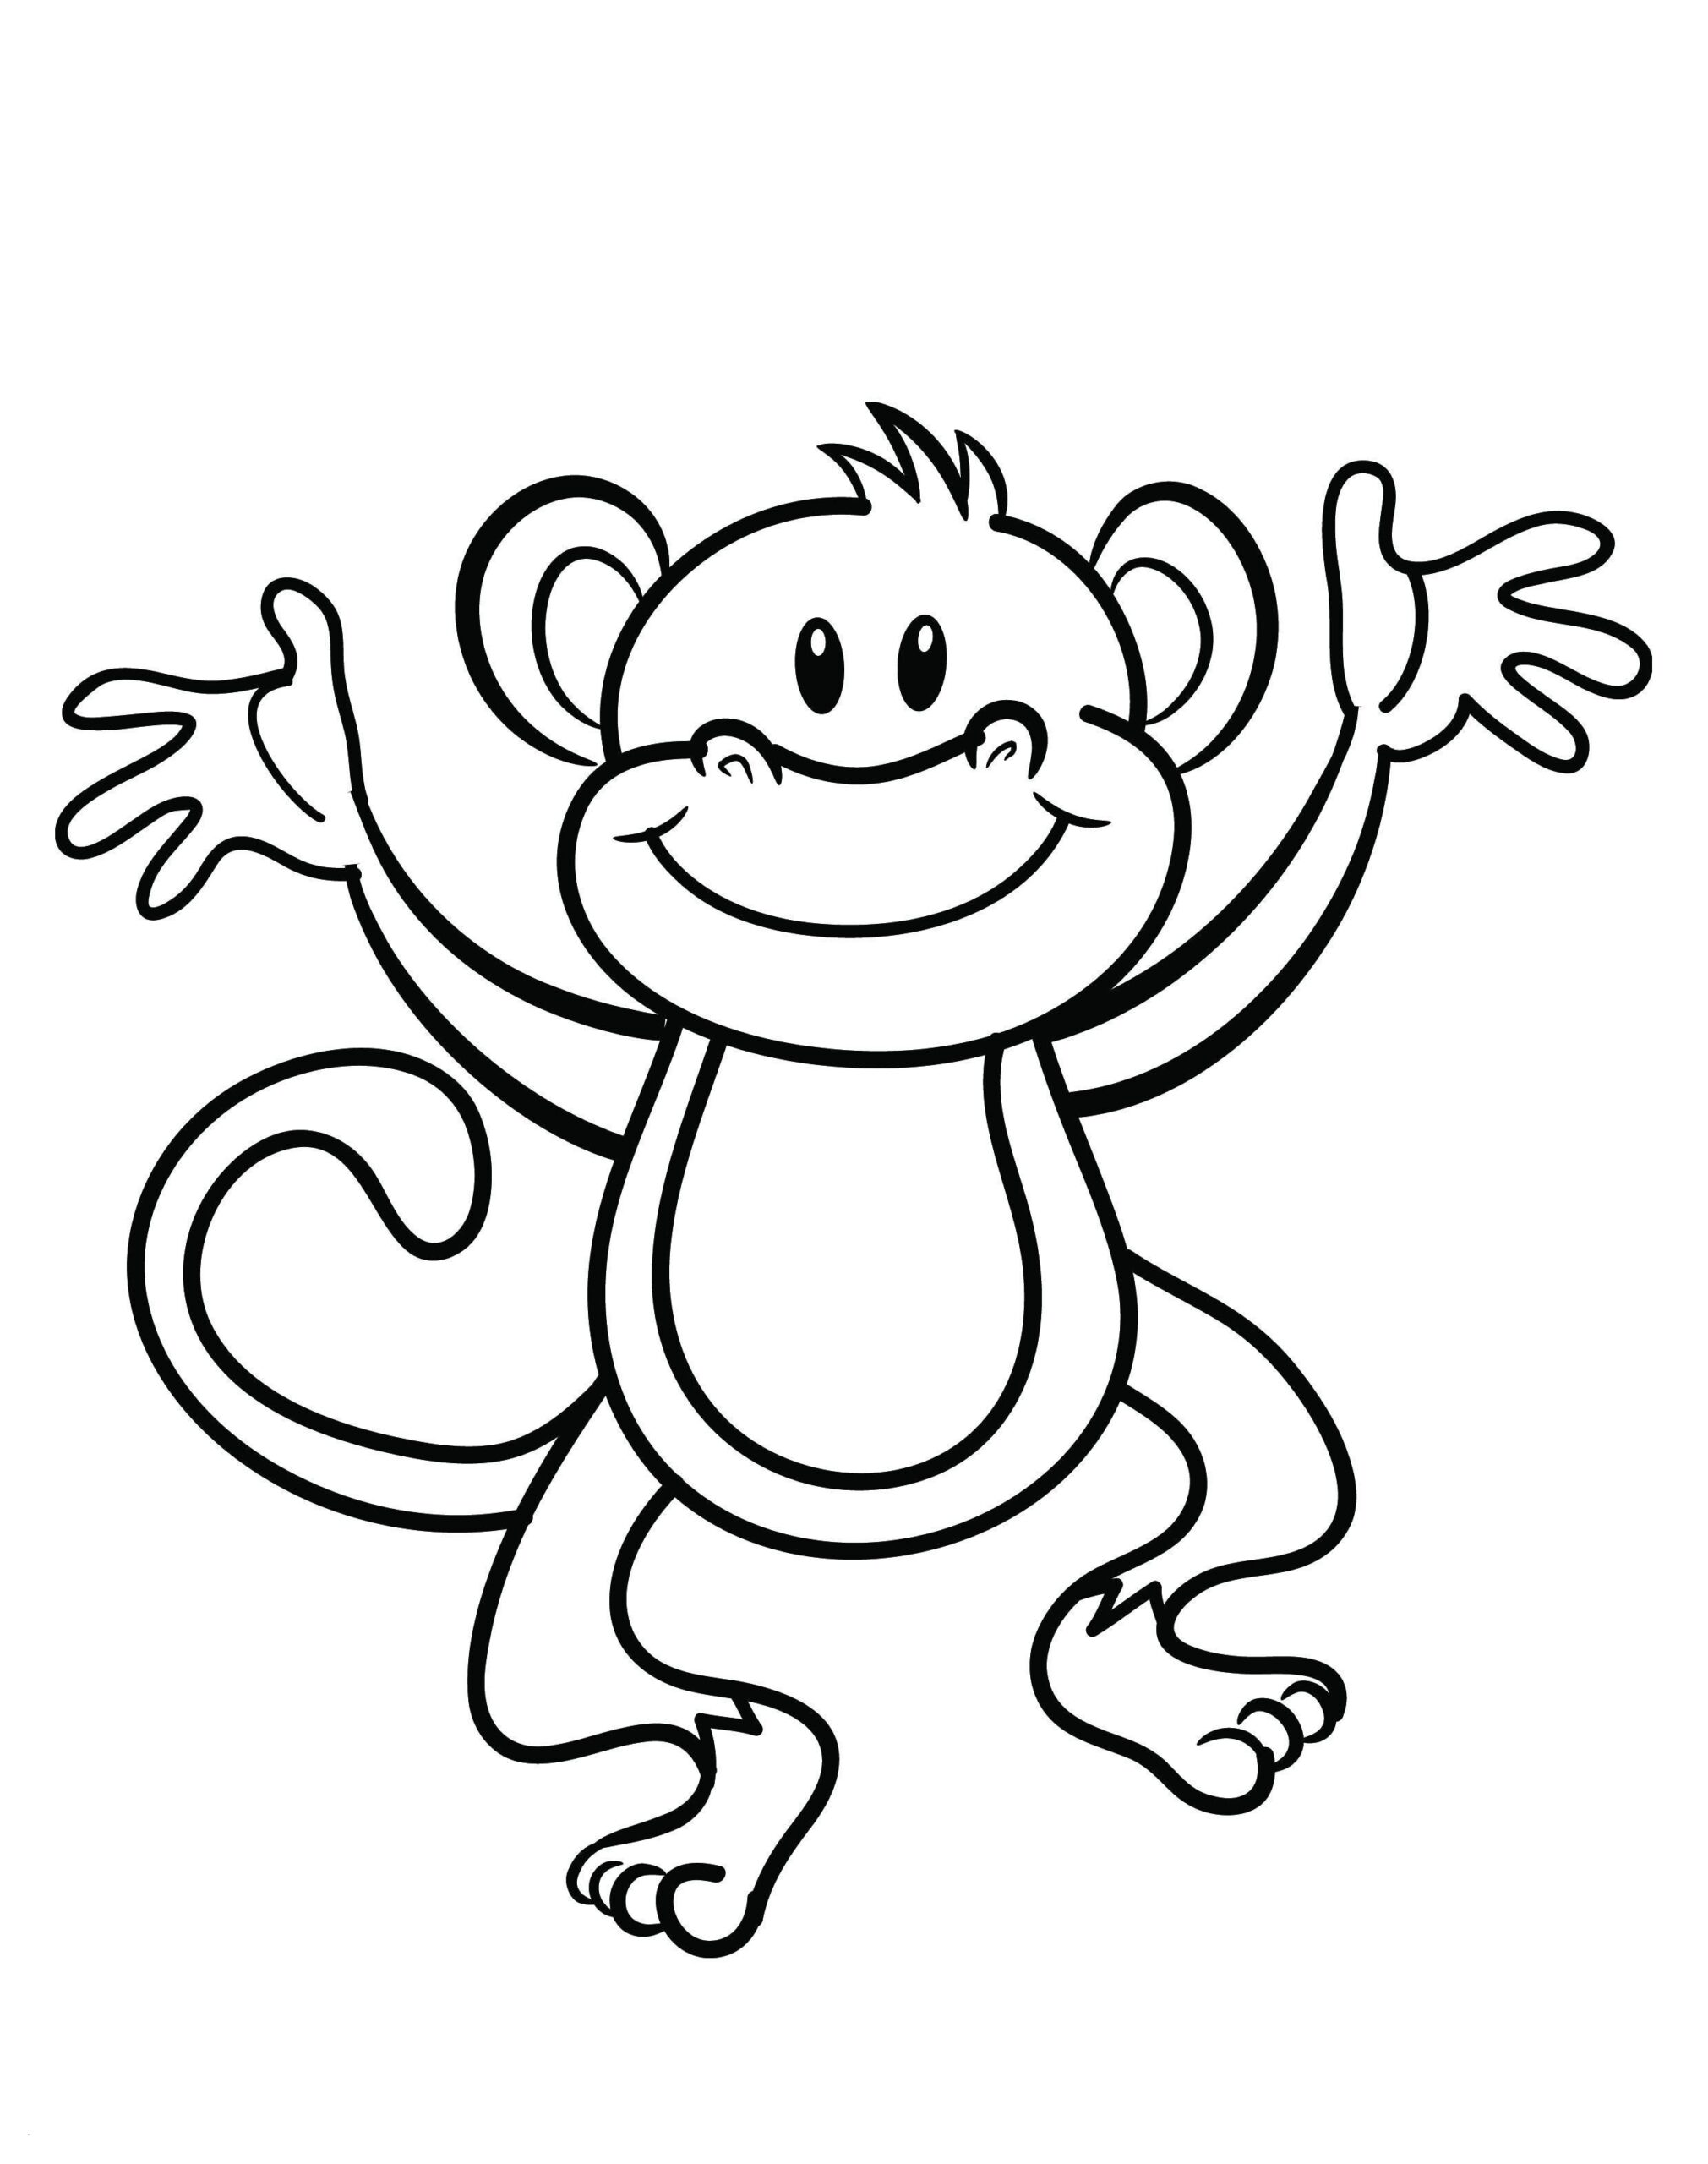 Monkey Colouring Pages Printable